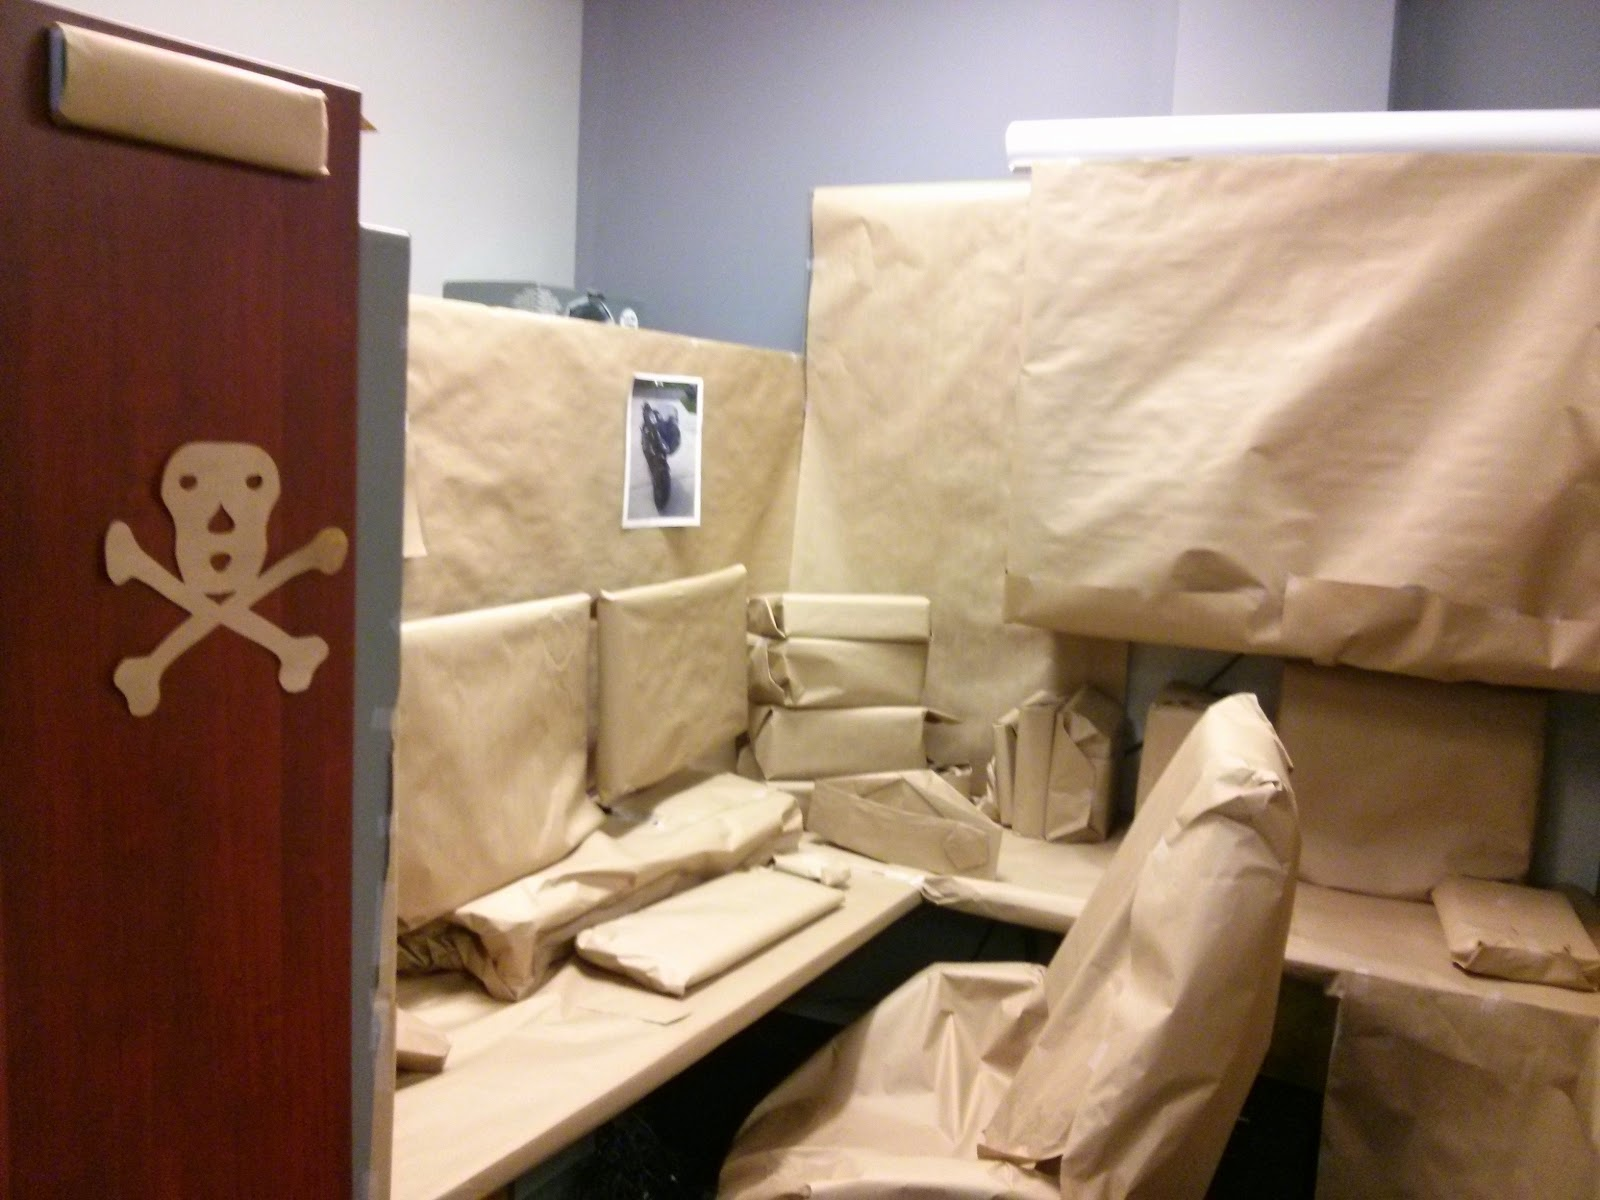 Web science and digital libraries research group september 2015 i couldnt resist to show our origami skills on the scale of covering an entire cubicle and every single item in it individually jeuxipadfo Image collections